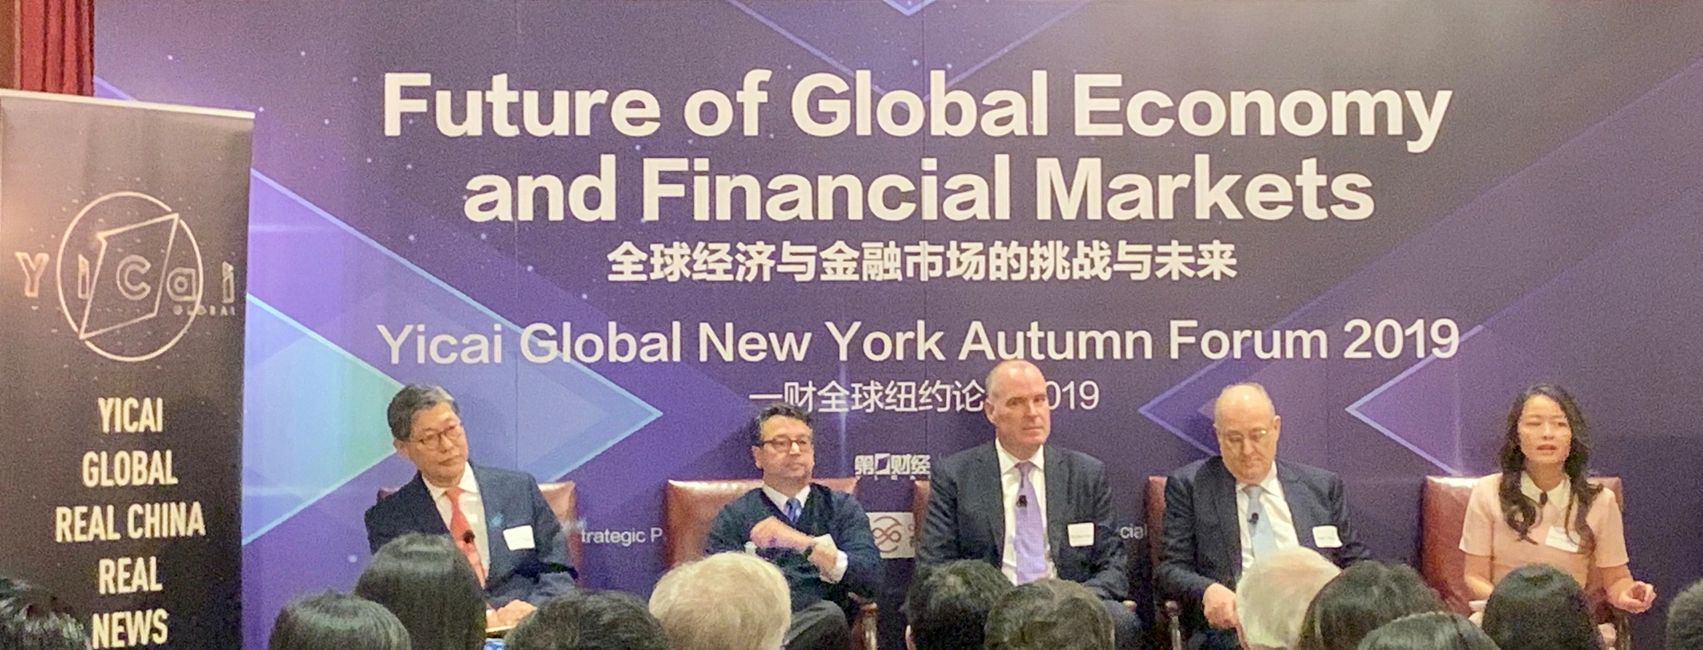 Yicai Global New York Autumn Forum moderated by Susan Yuqing Feng